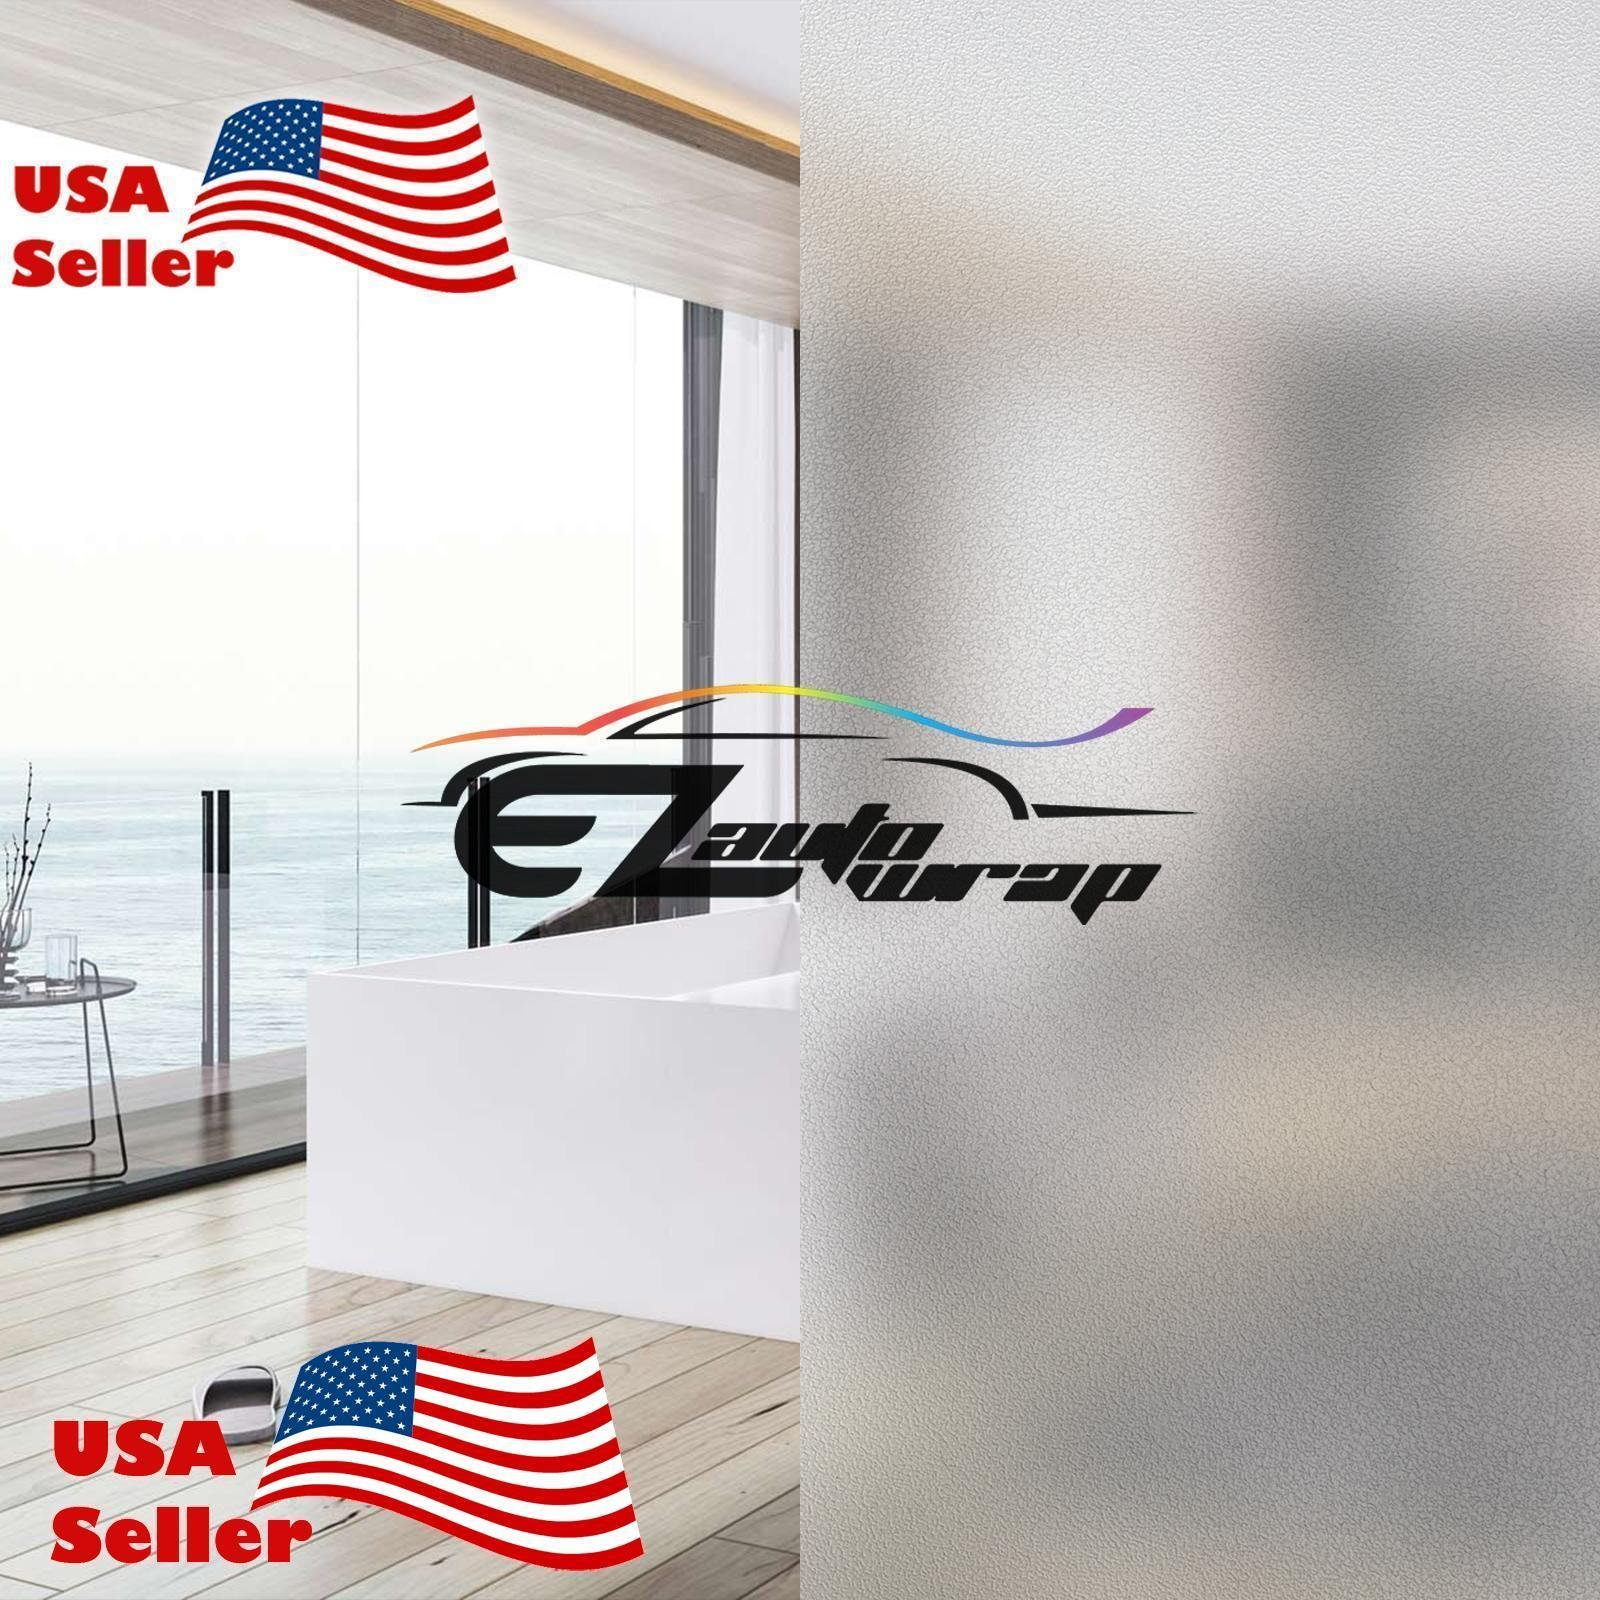 EZAUTOWRAP Frosted Glass Peel And Stick Window Film Home Bedroom Bathroom Privacy Waterproof Sticker Decal - 4''X8'' (10cm x 20cm) Sample